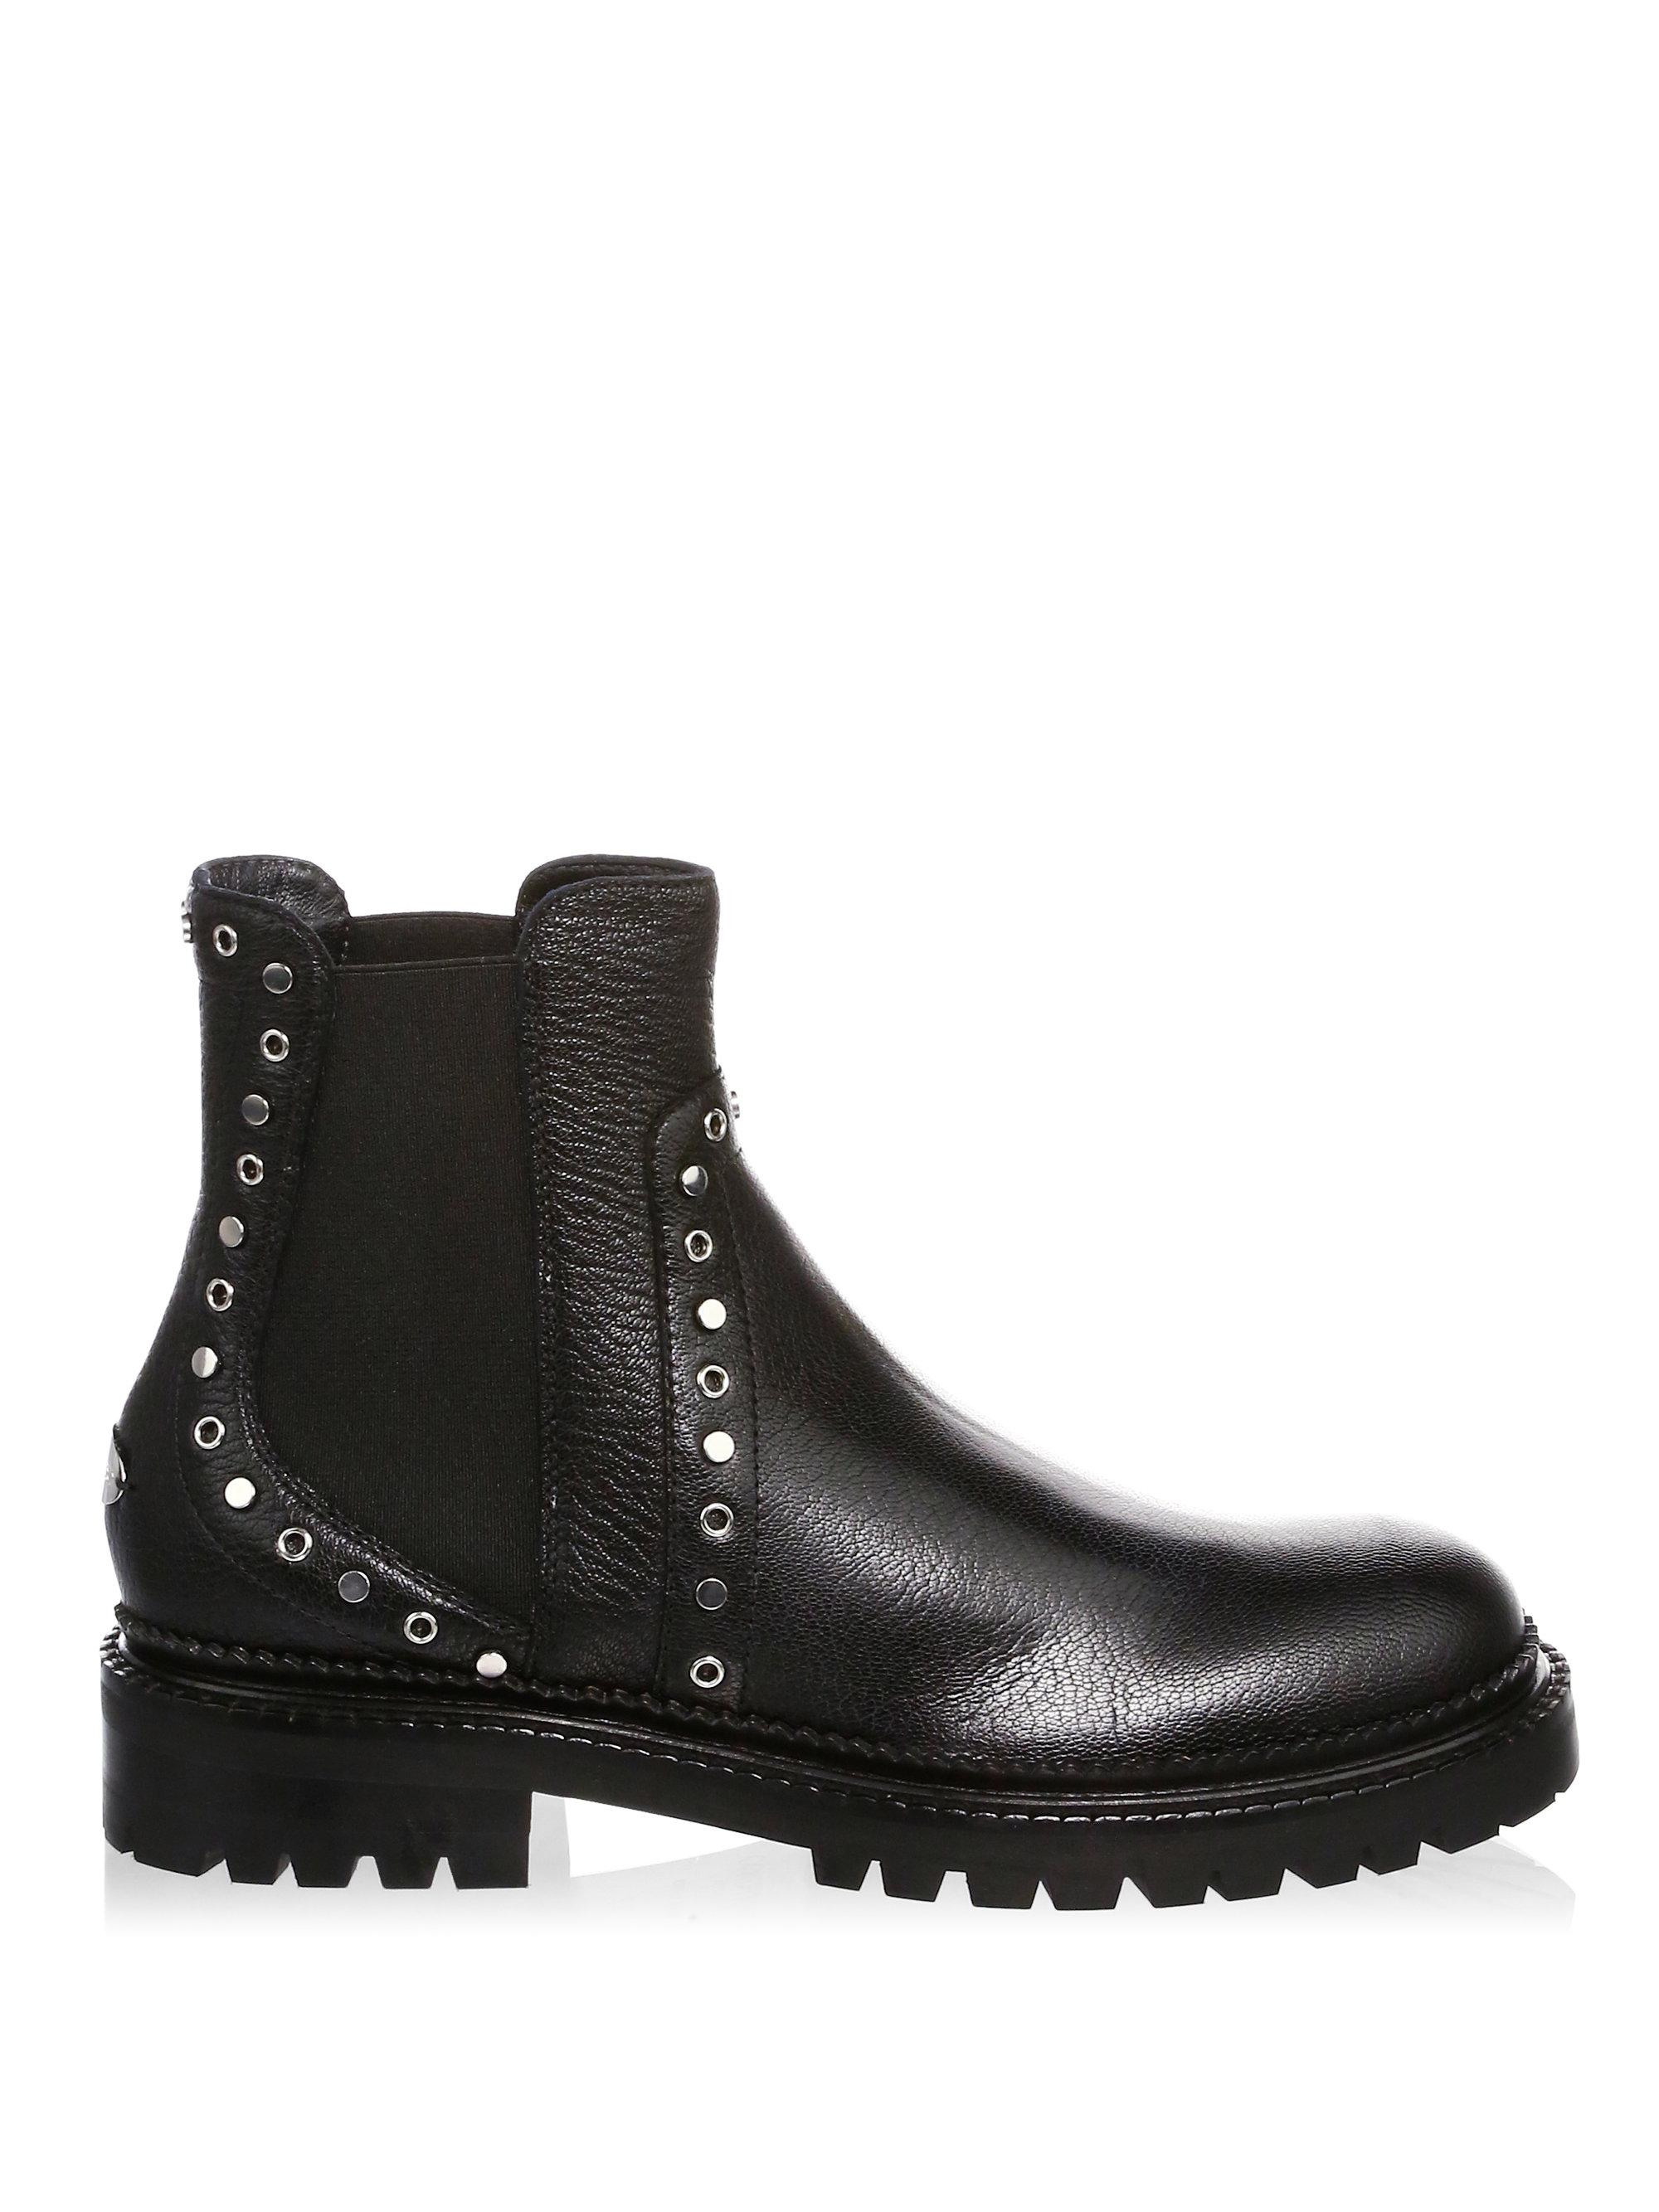 7e973dcc372 Jimmy Choo Studded Chelsea Boots in Black - Lyst